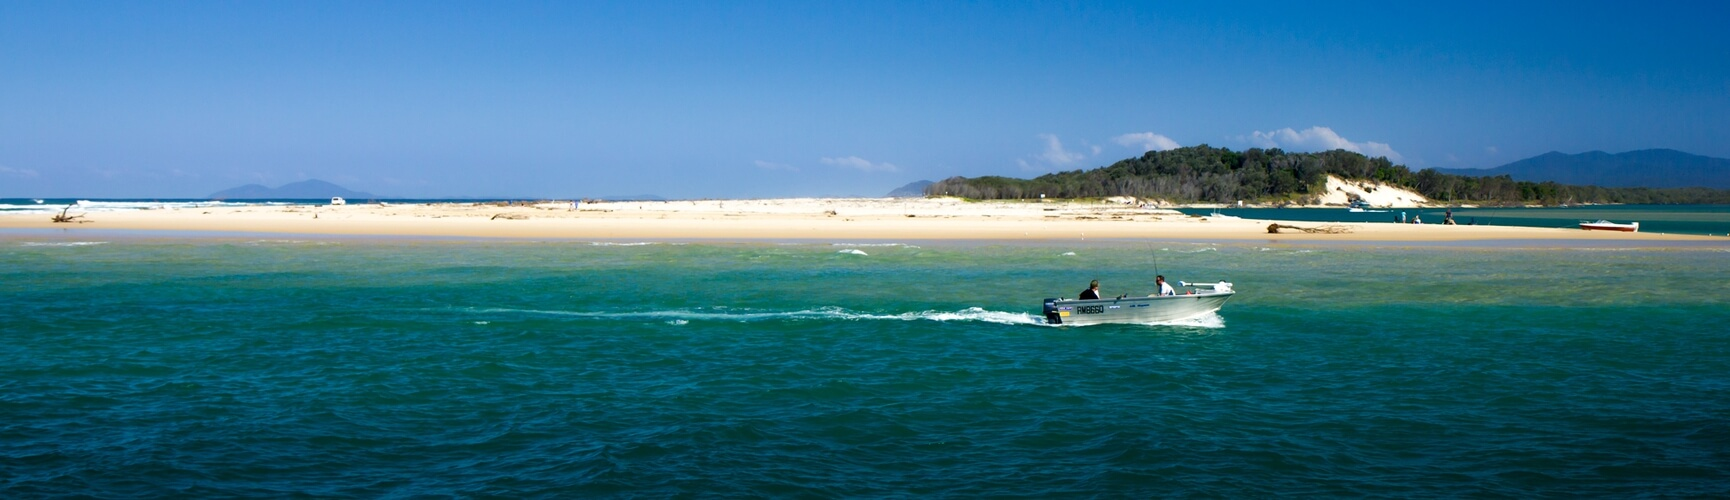 Nambucca Heads water activities